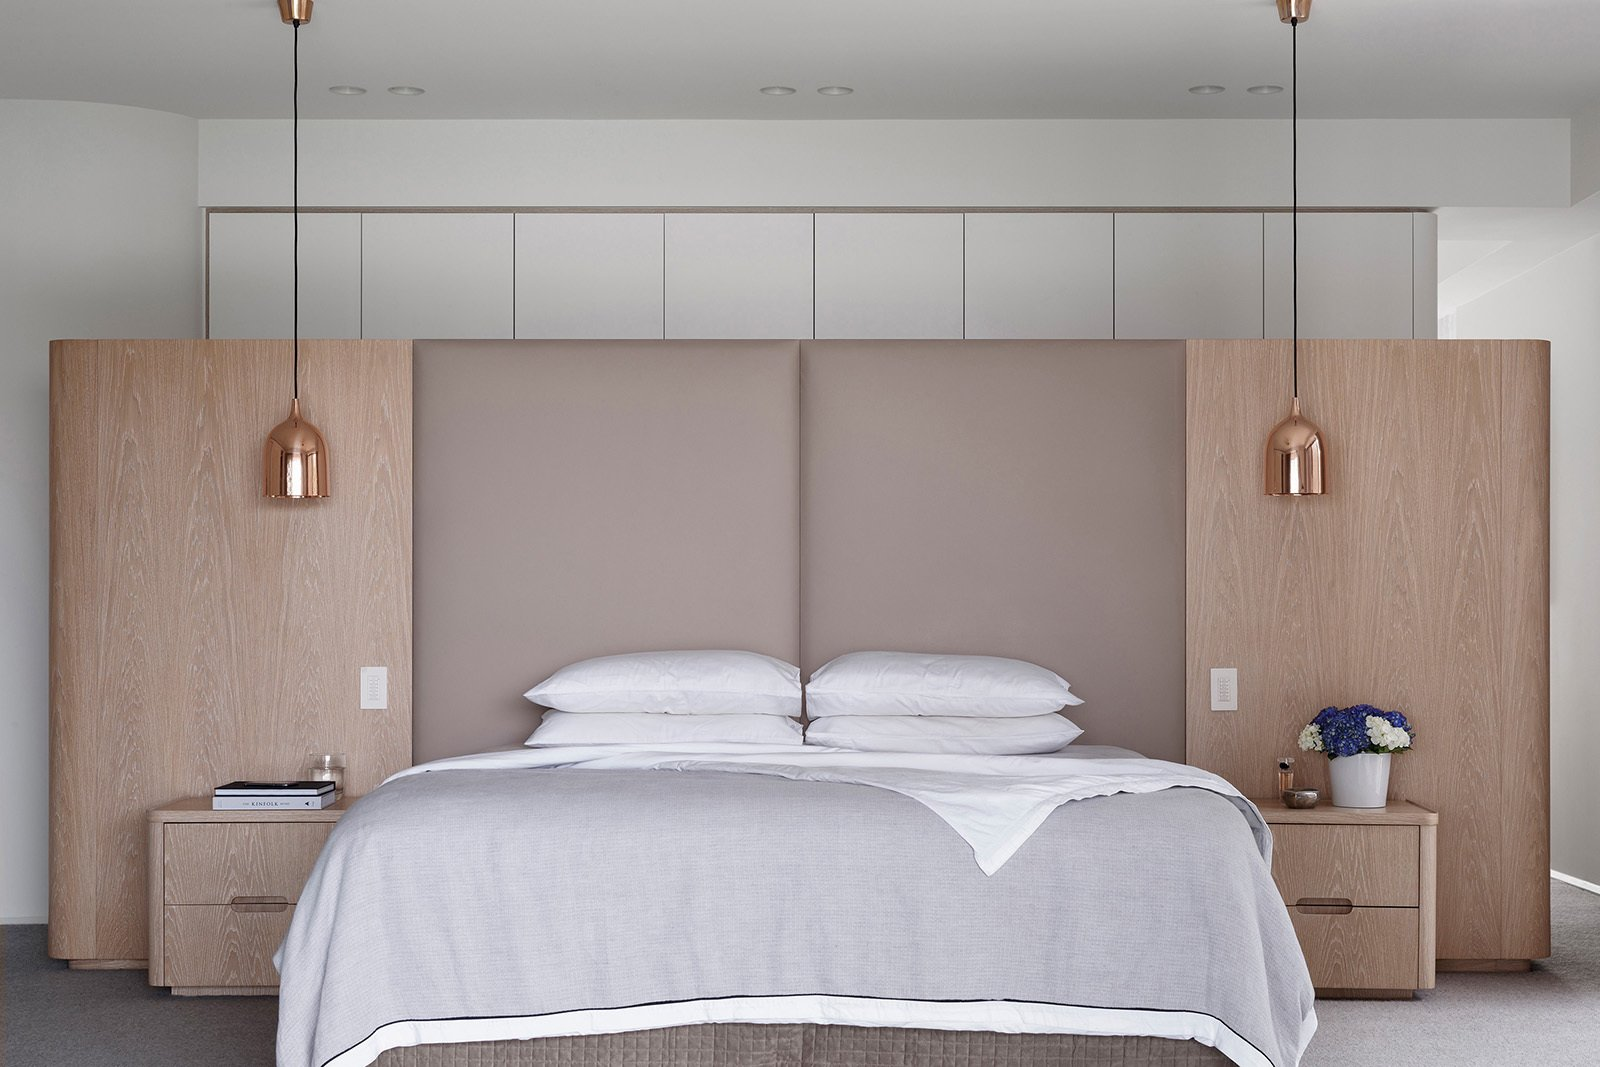 11 Bright Ideas for Bedroom Ceiling Lighting - Dwell